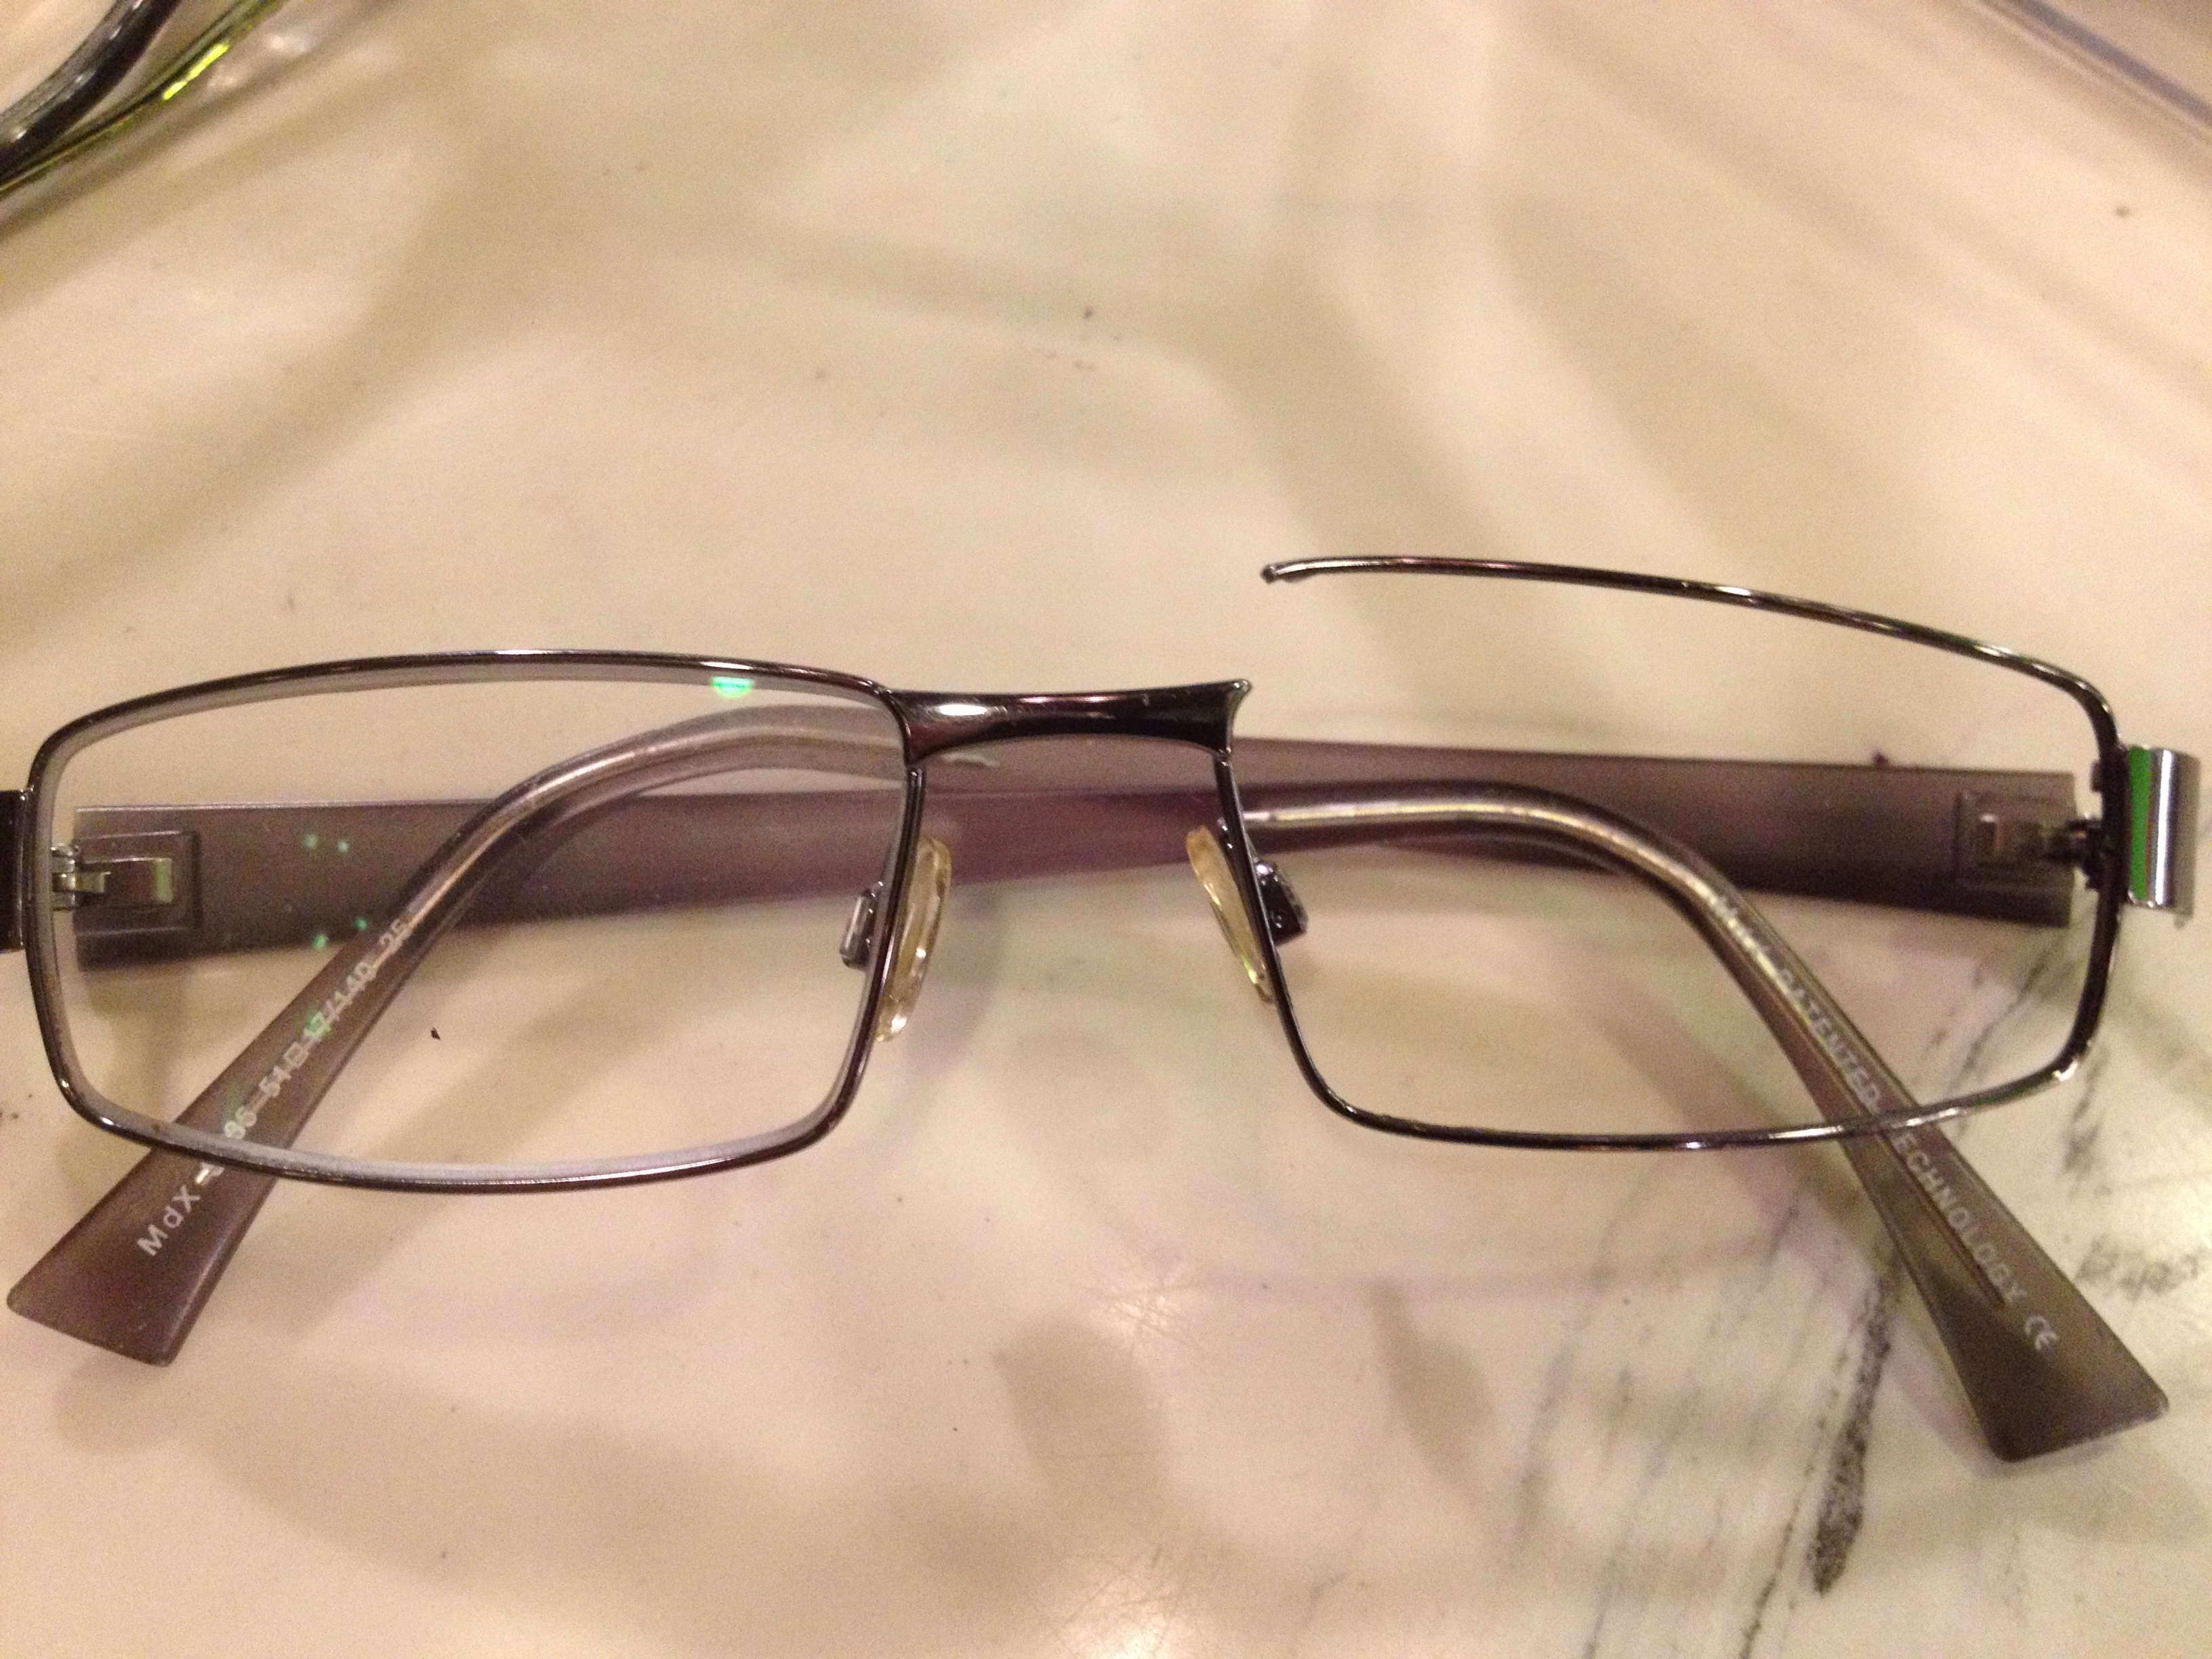 Eyeglass Frame Repair Soldering : Victoria Glasses Adjustment, Frame Repair, Screw, Nosepad ...